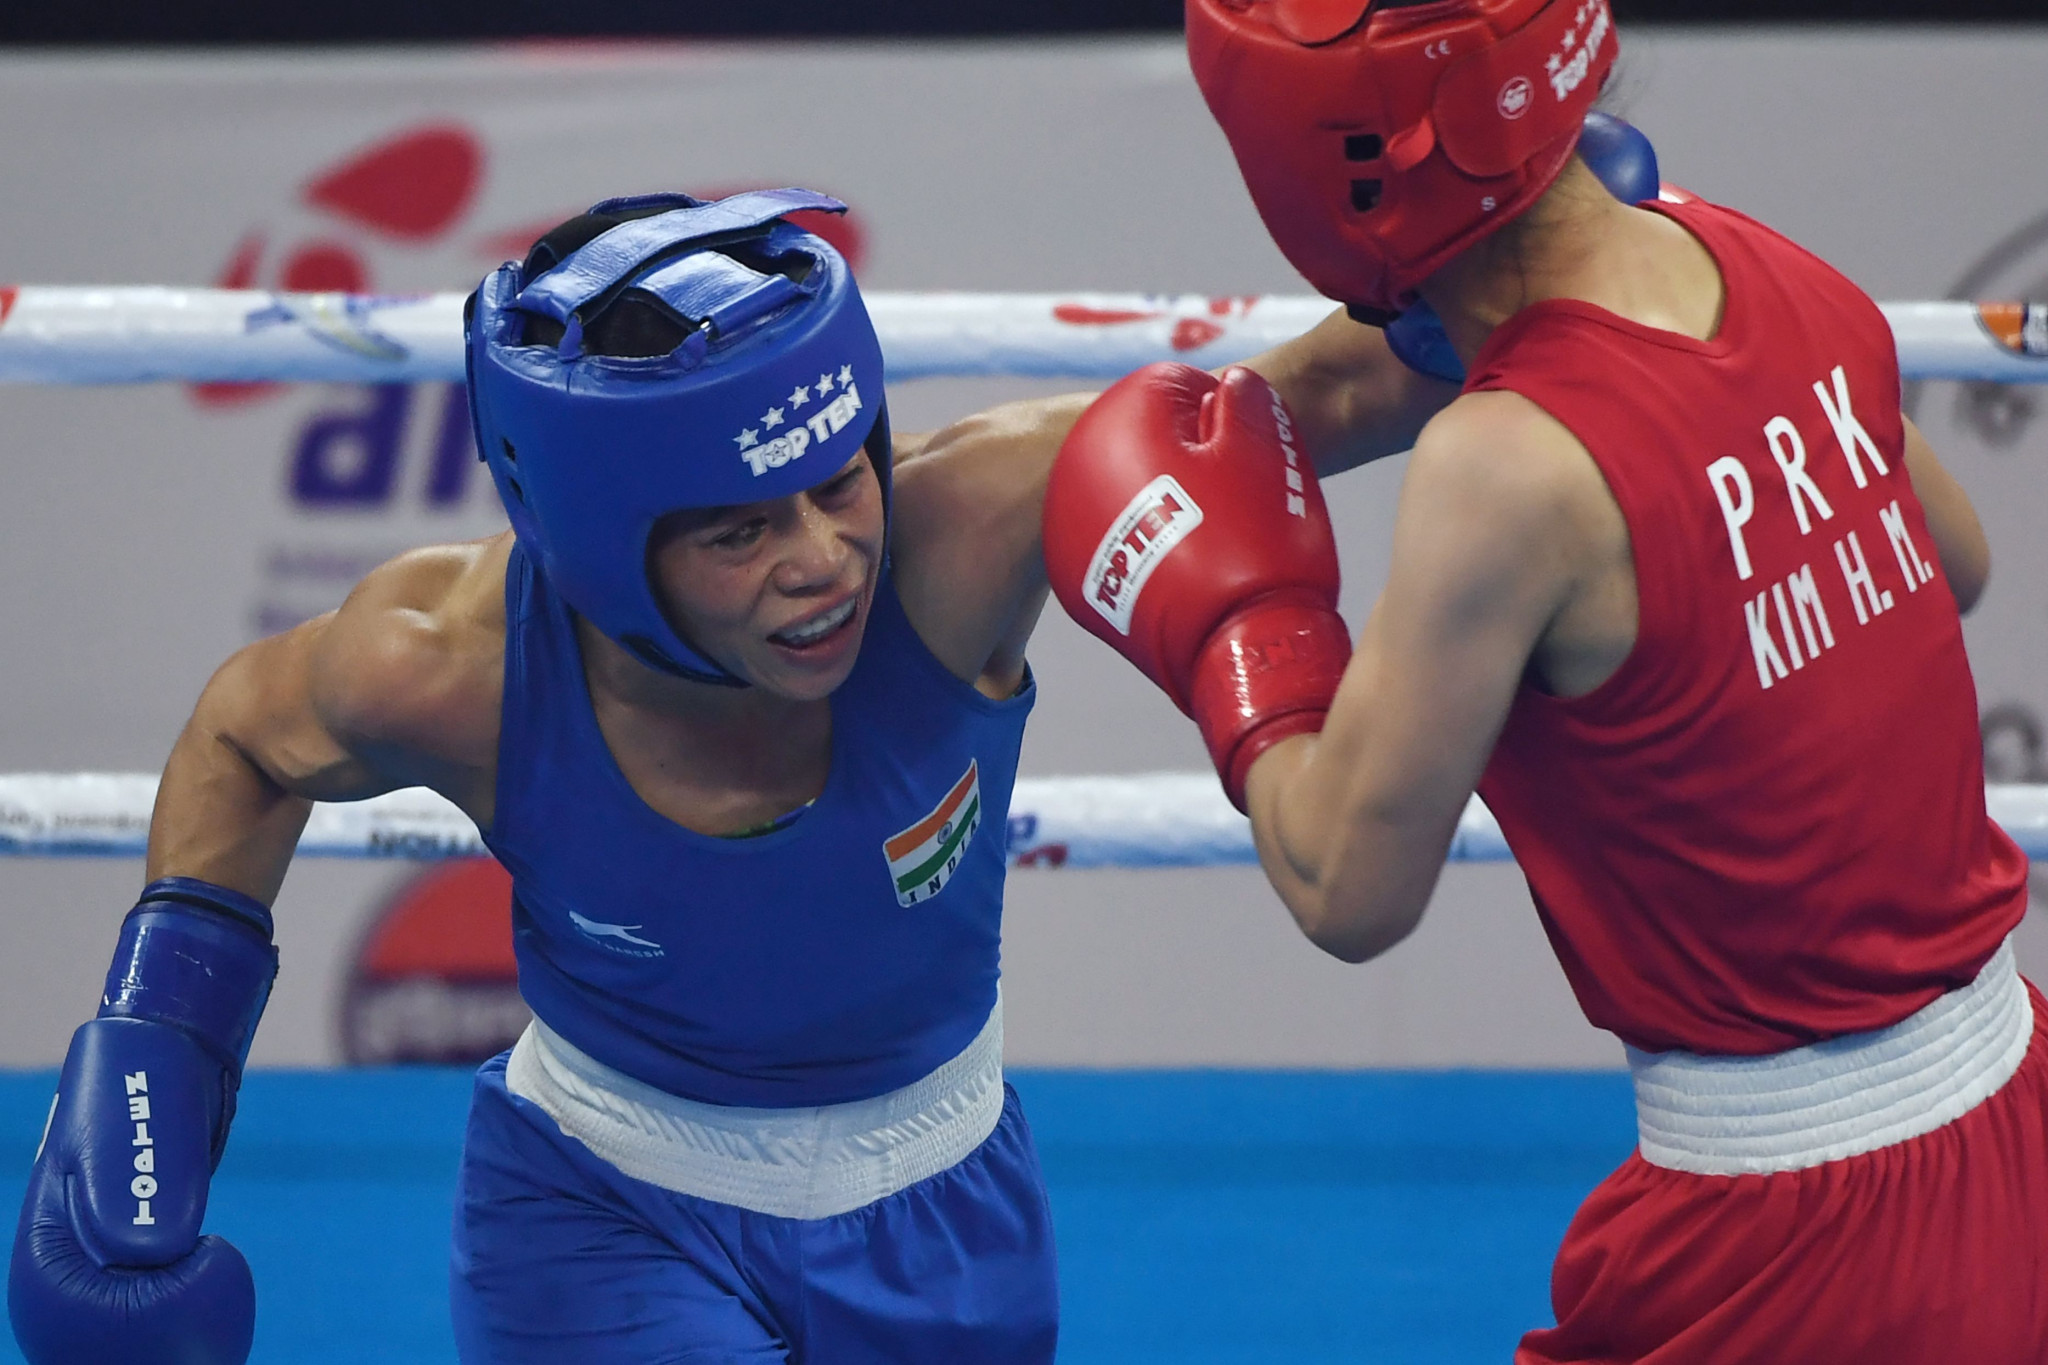 India to hold trials to choose team for Tokyo 2020 Olympic boxing qualifier